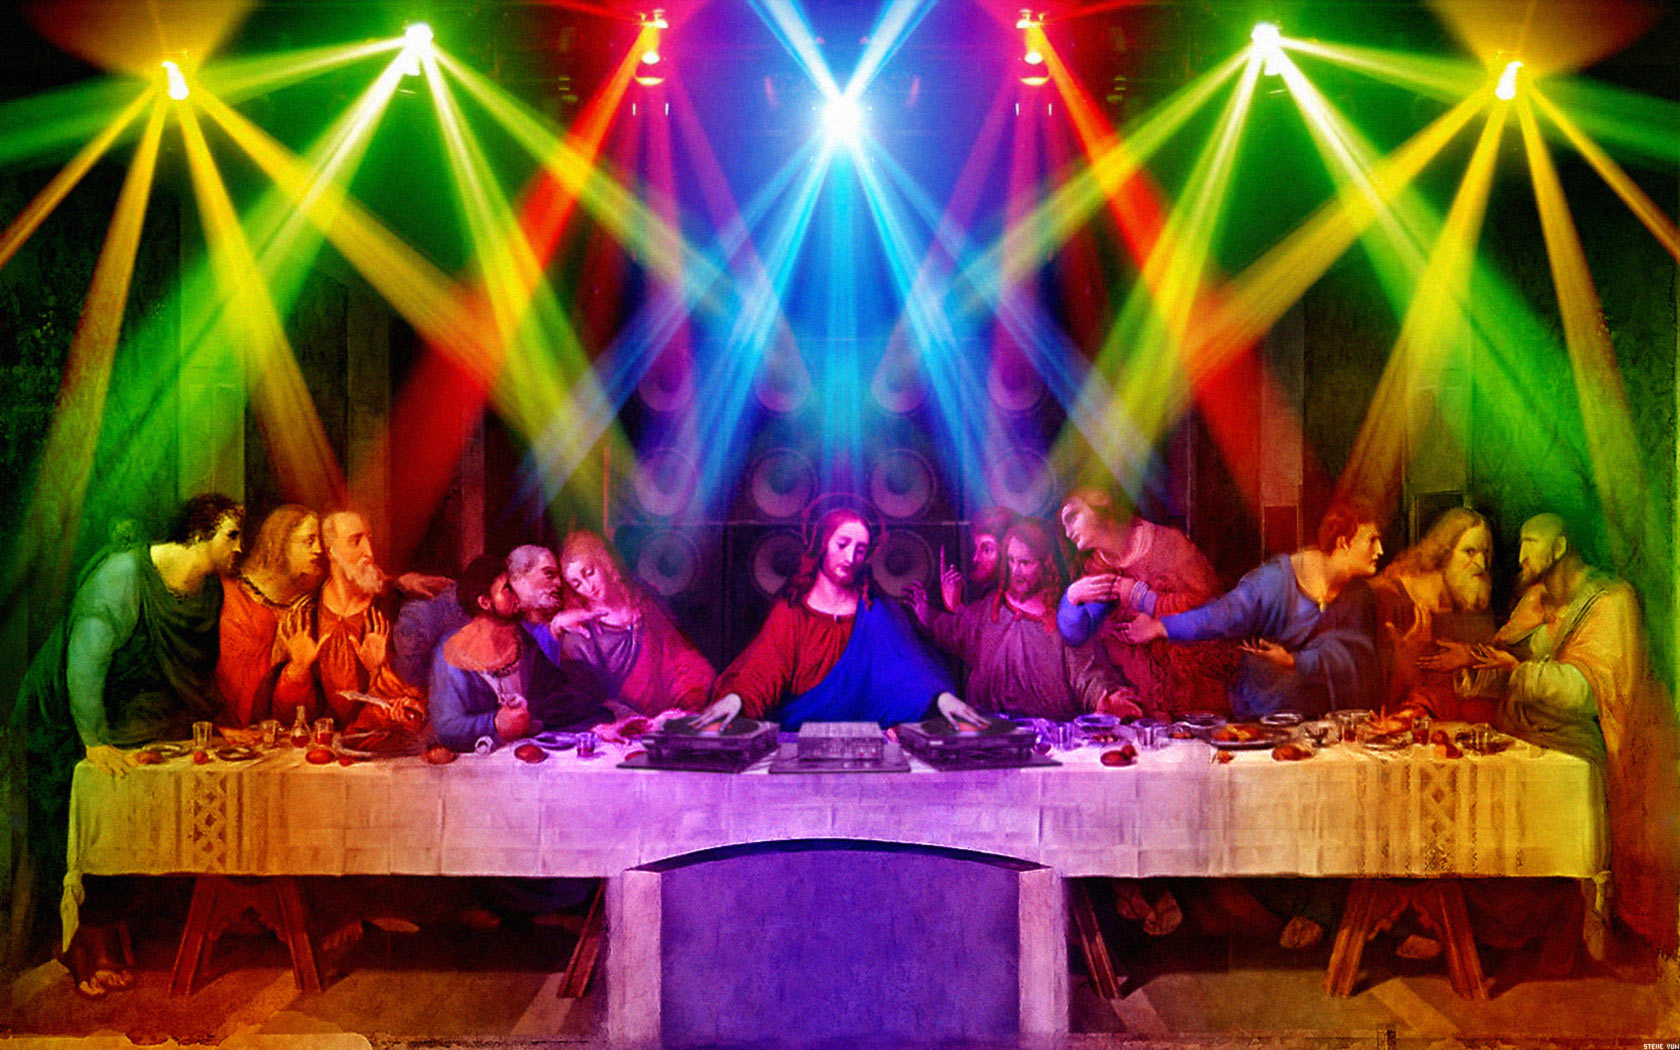 last-disco-dinner - Click To View Image